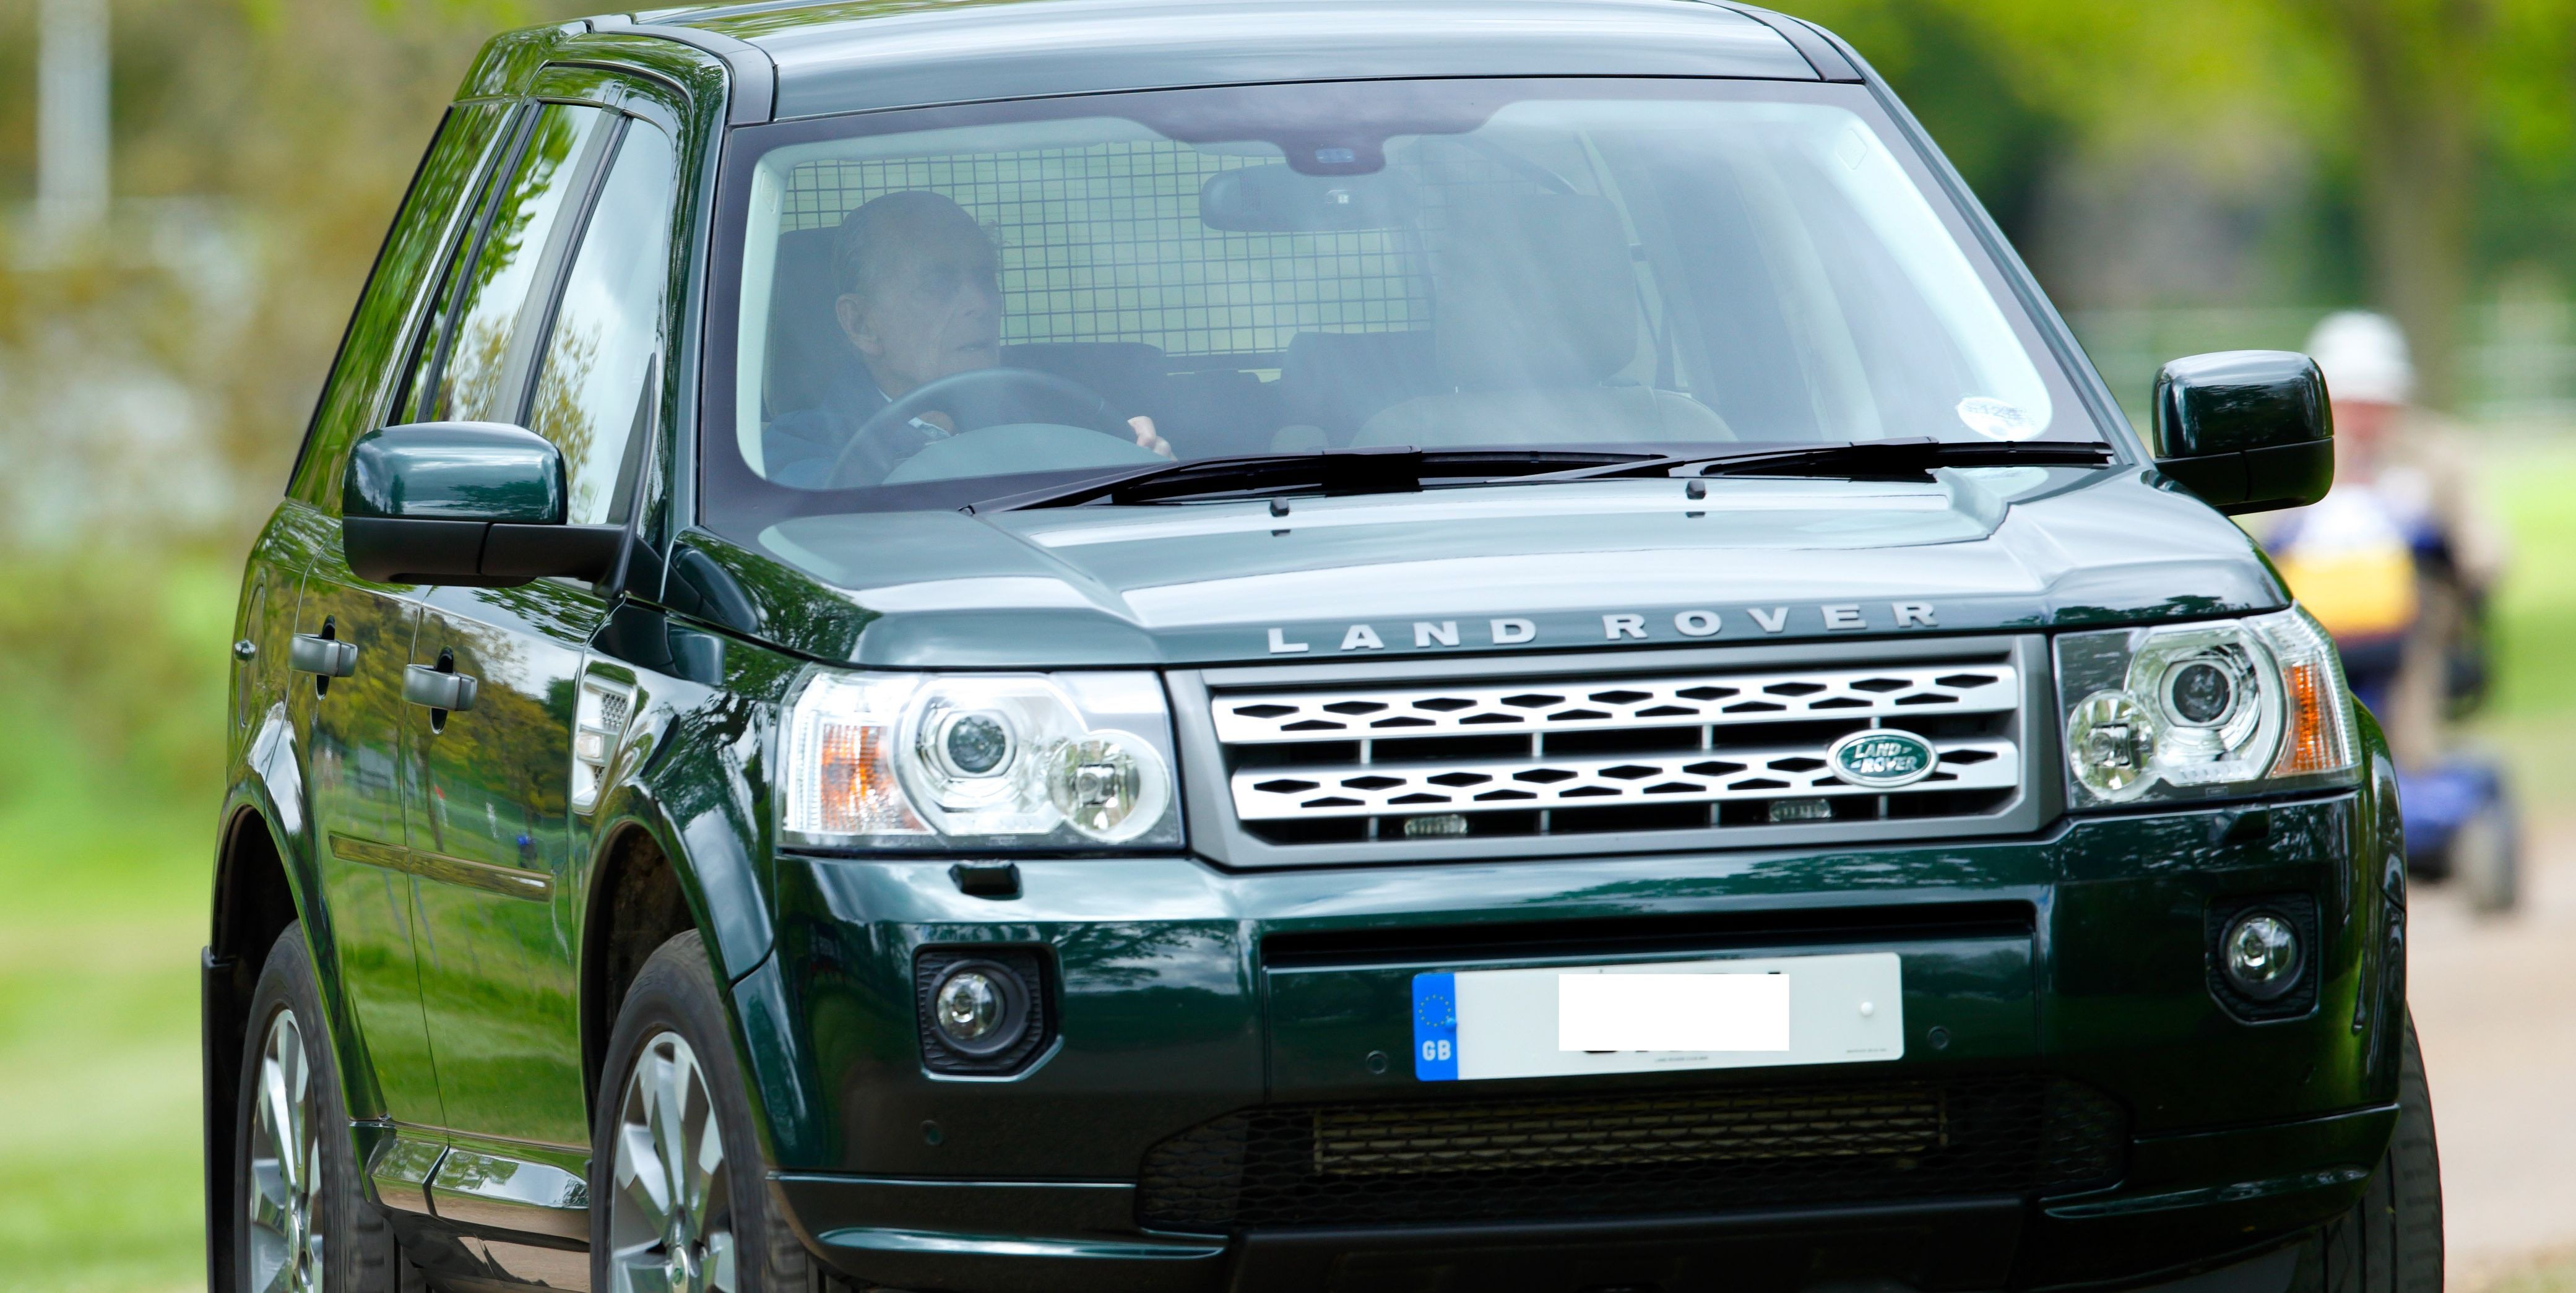 """Queen Elizabeth II's husband got into a crash in his Land Rover Freelander in January and has now """"voluntarily"""" surrendered his driver's license."""